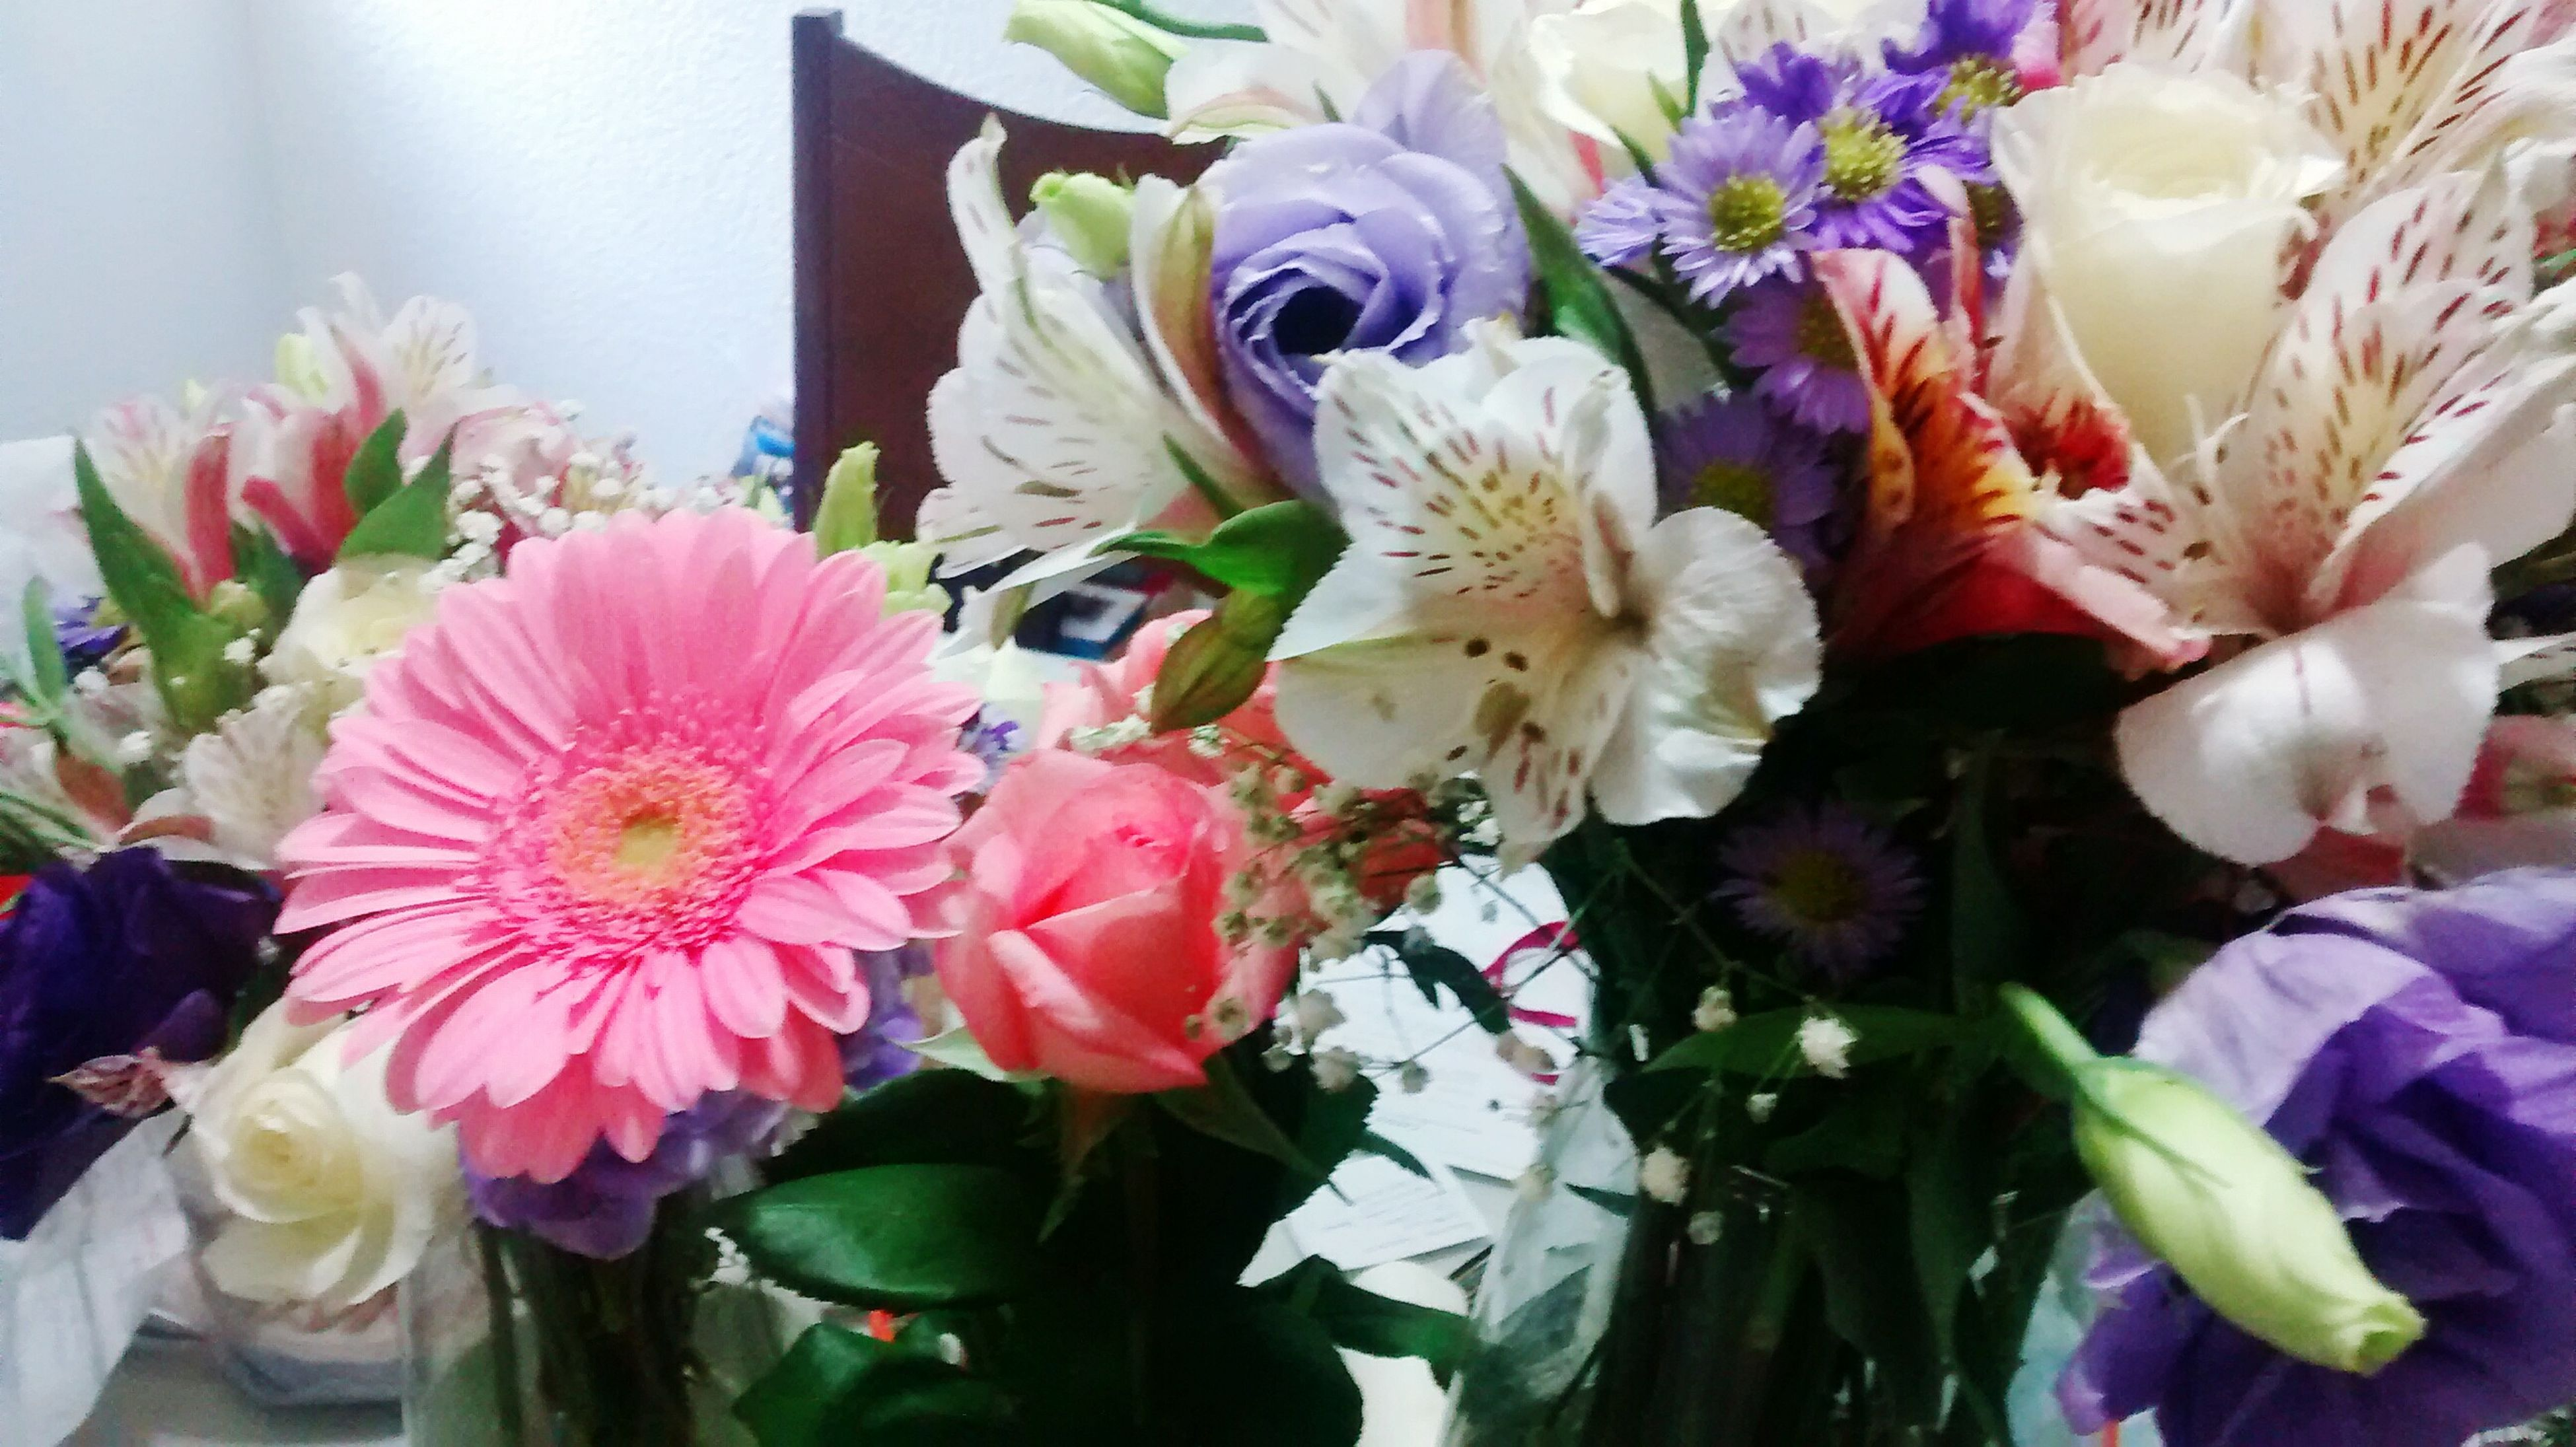 flower, indoors, petal, freshness, fragility, flower head, bouquet, decoration, flower arrangement, variation, vase, multi colored, bunch of flowers, close-up, plant, beauty in nature, blooming, tulip, nature, no people